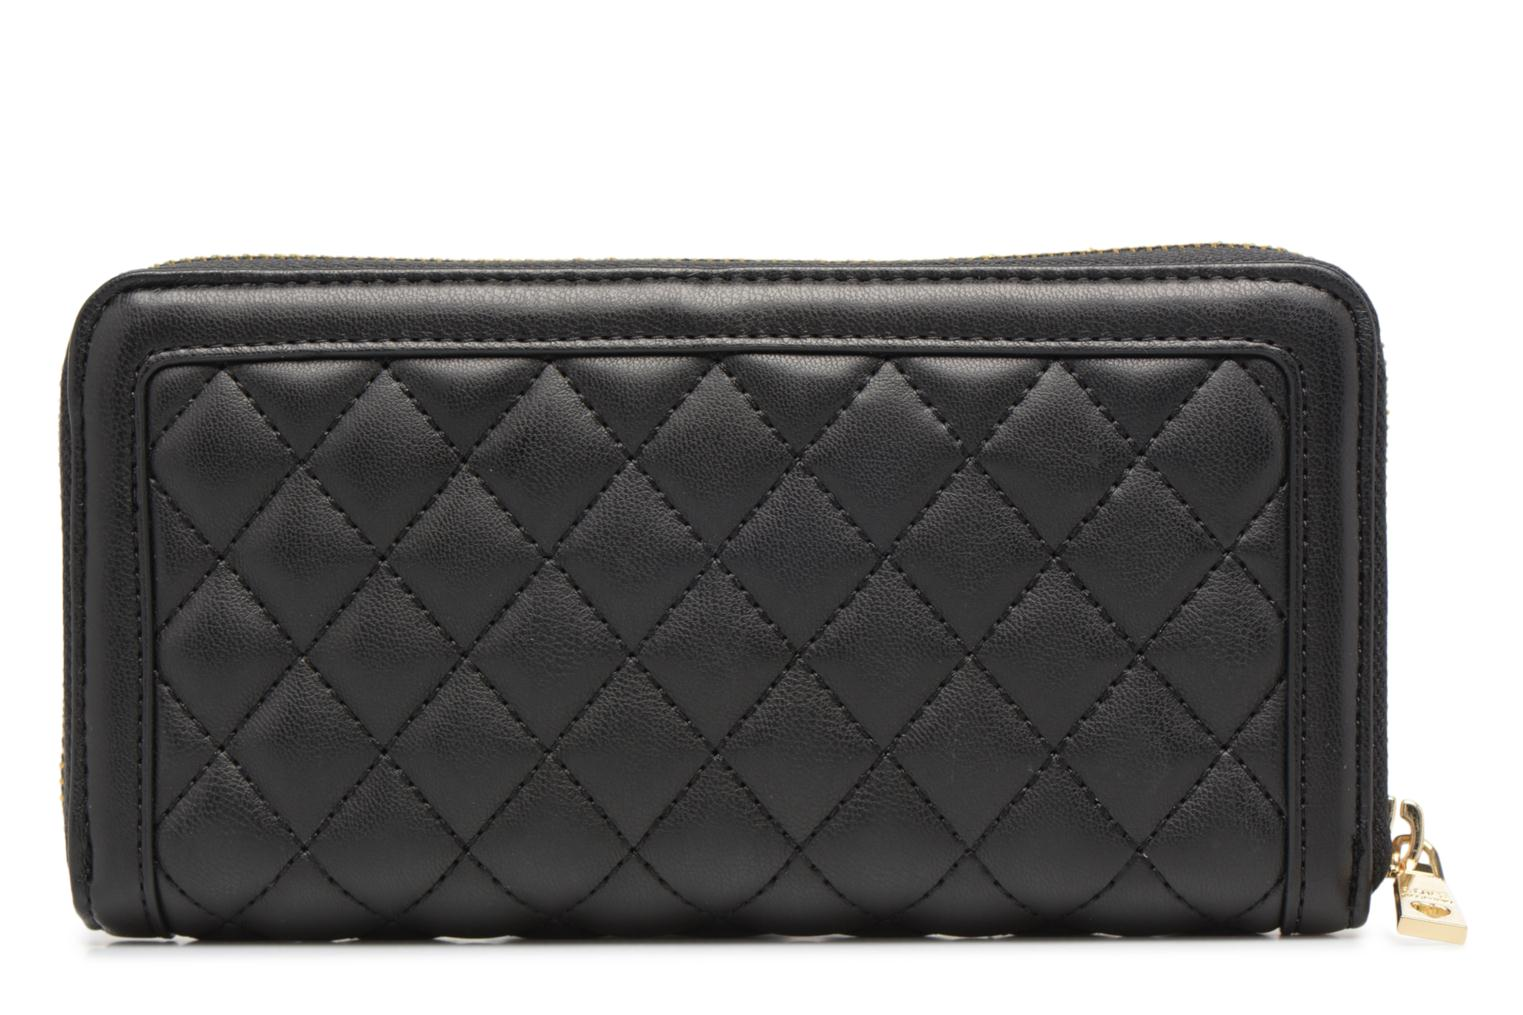 Petite Maroquinerie Love Moschino Portefeuille Super Quilted Noir vue face